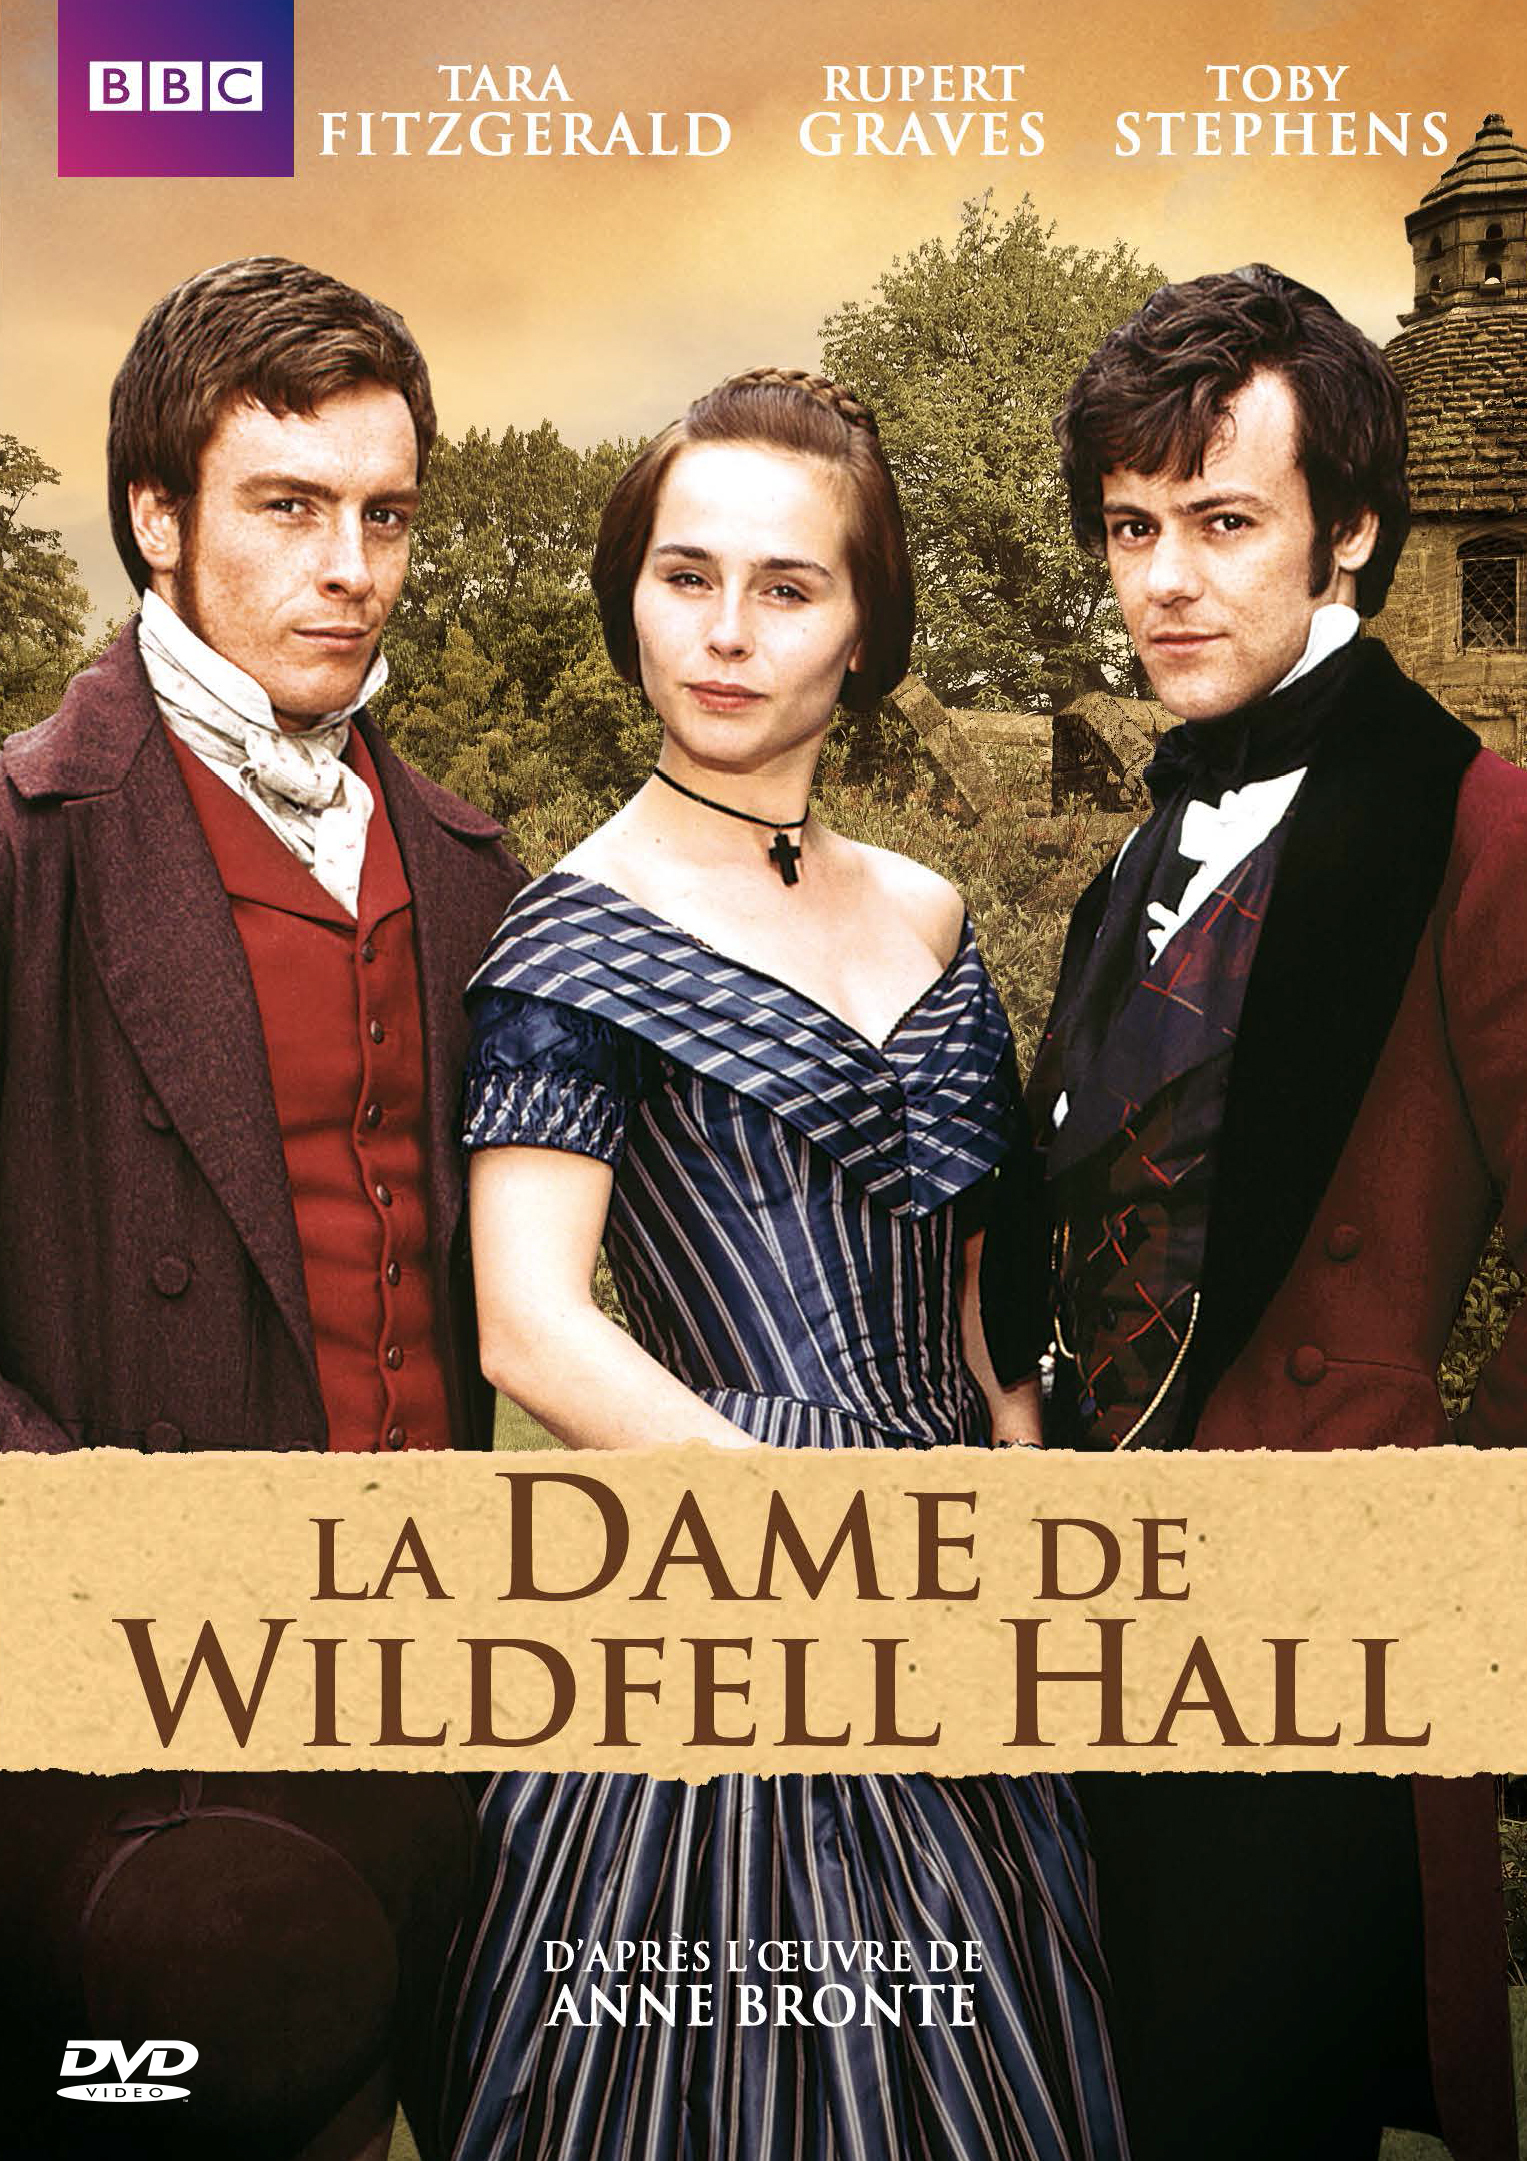 DAME DE WILDFELL HALL (LA) - DVD